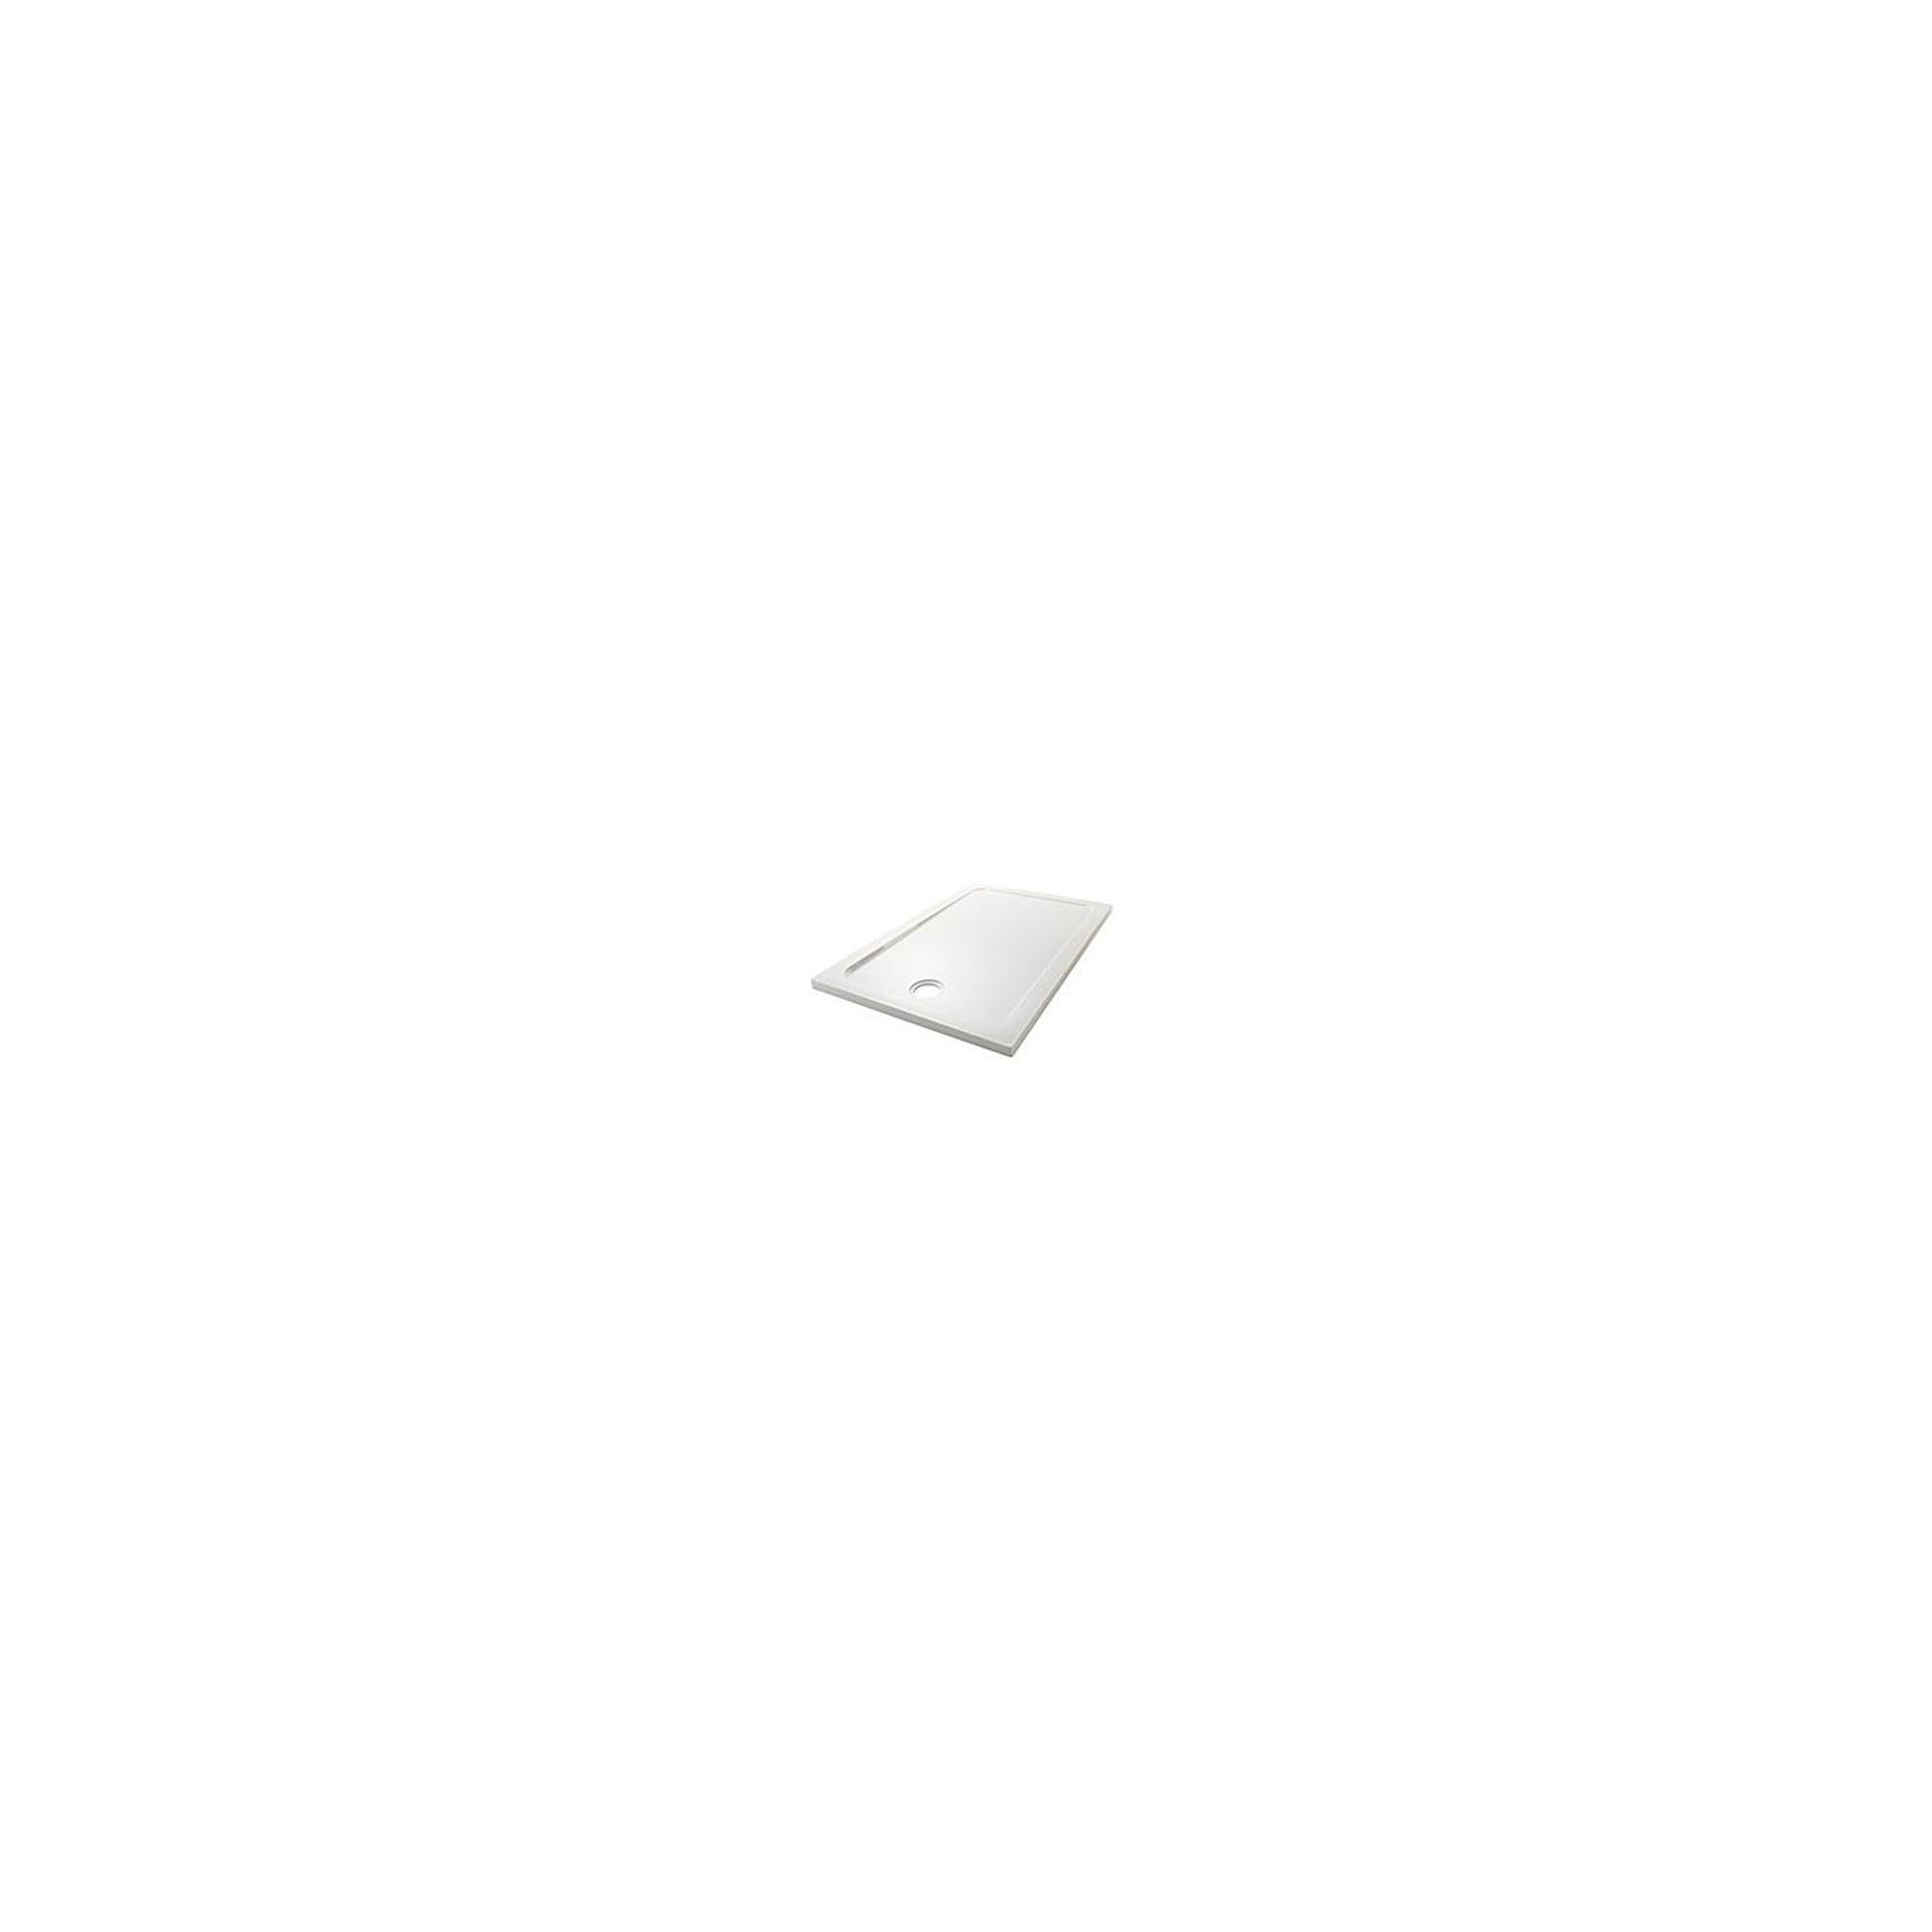 Mira Flight Low Profile Rectangular Shower Tray 1600mm x 760mm at Tesco Direct